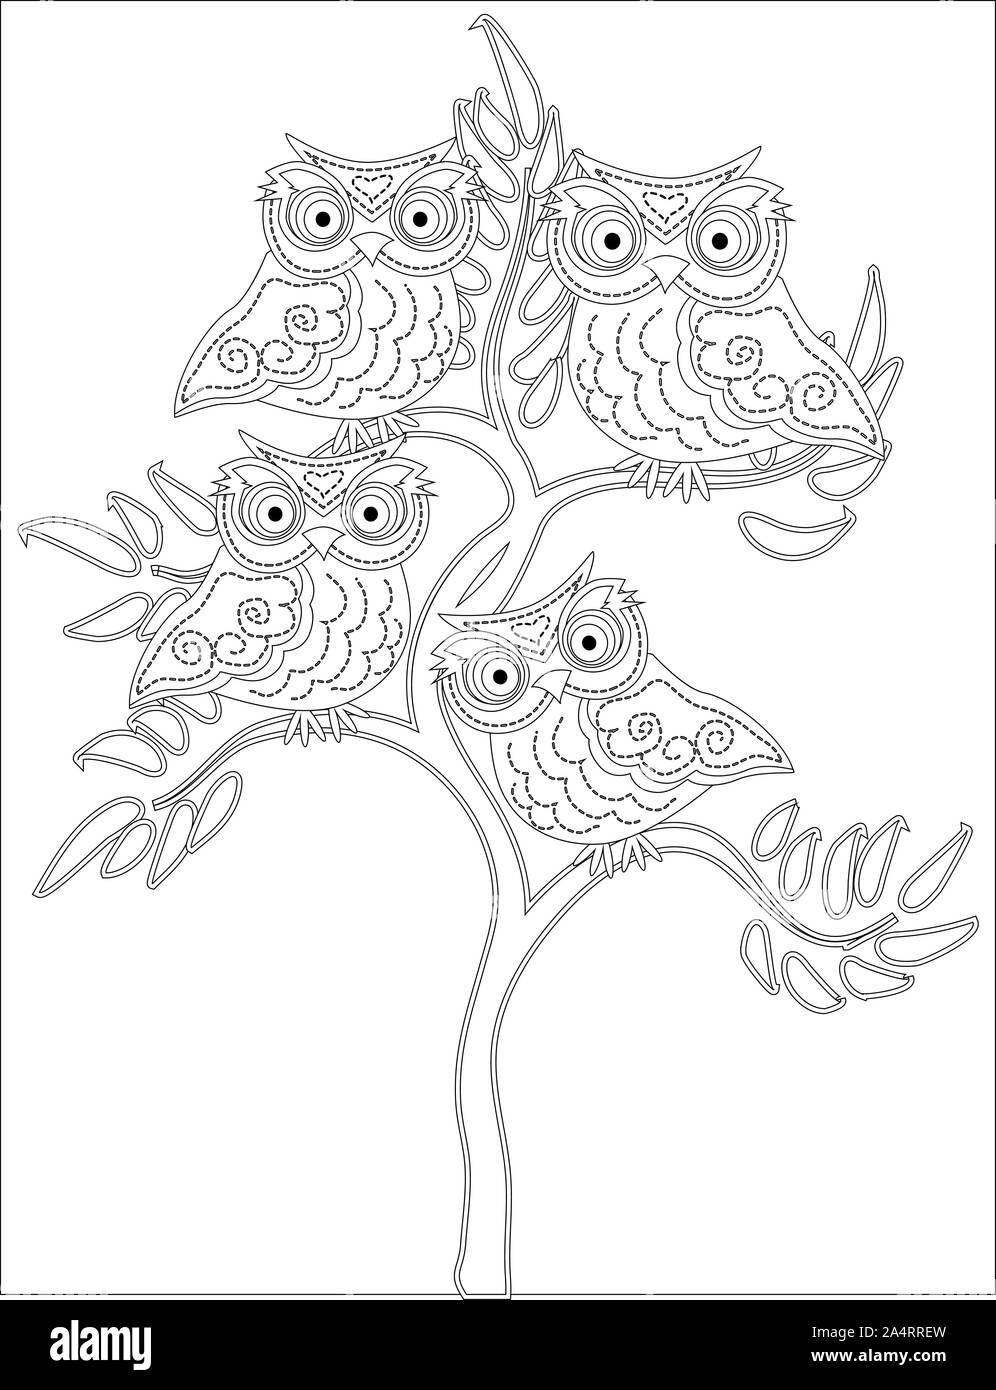 Coloring Book For Adult And Older Children Coloring Page With Cute Owl And Floral Frame Outline Drawing In Zentangle Style Stock Photo Alamy